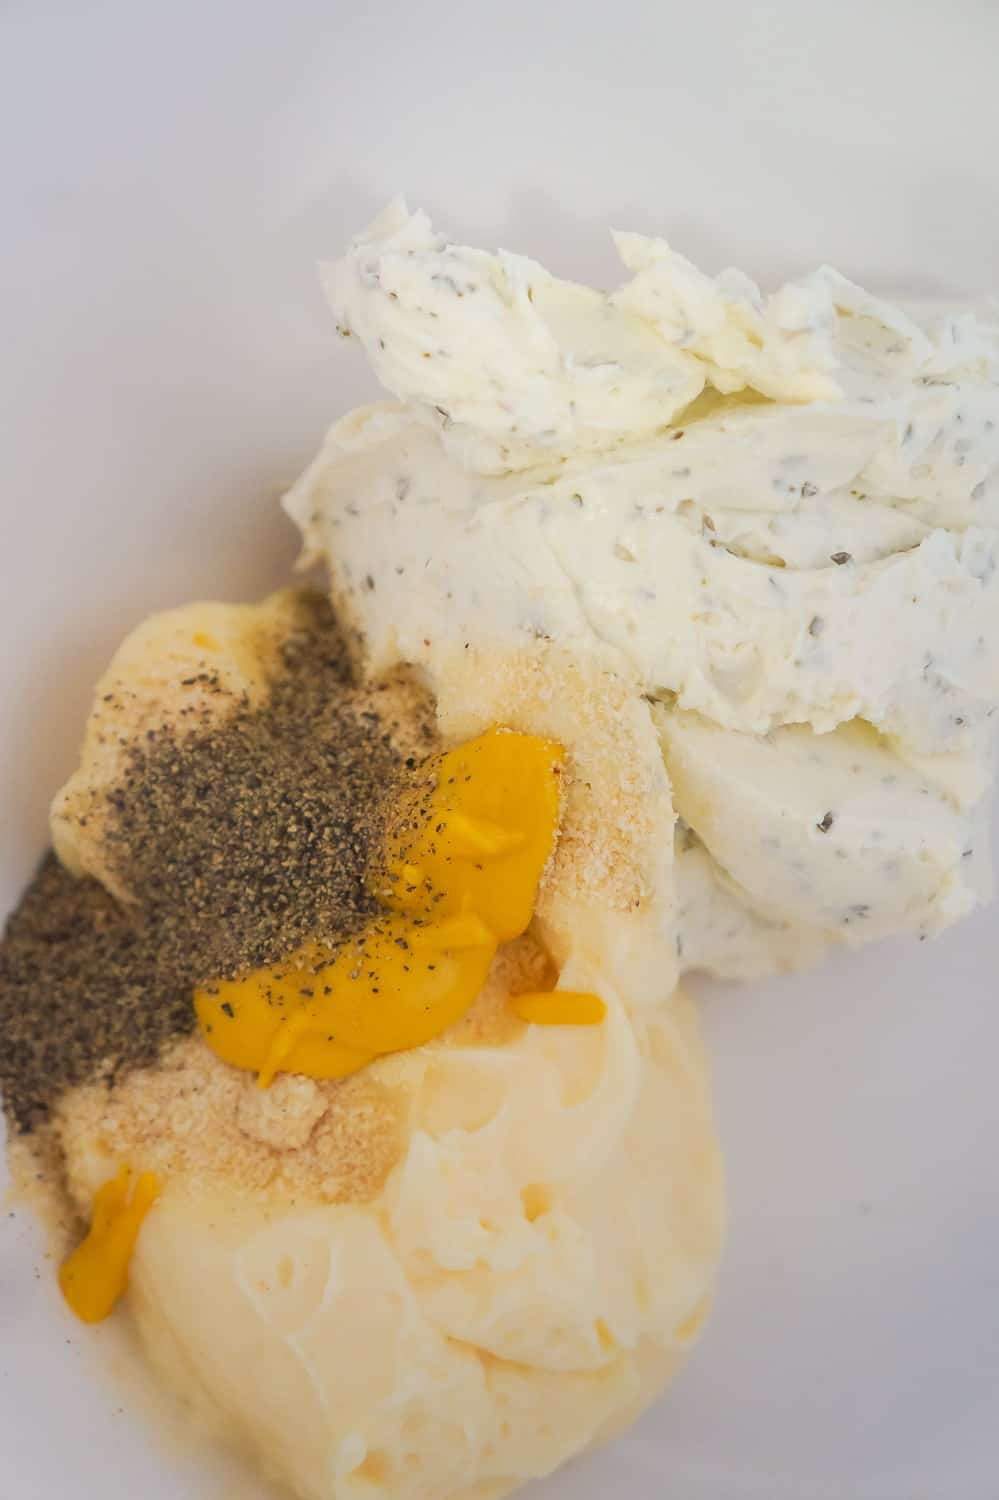 herb and garlic cream cheese, mayo and mustard in a mixing bowl